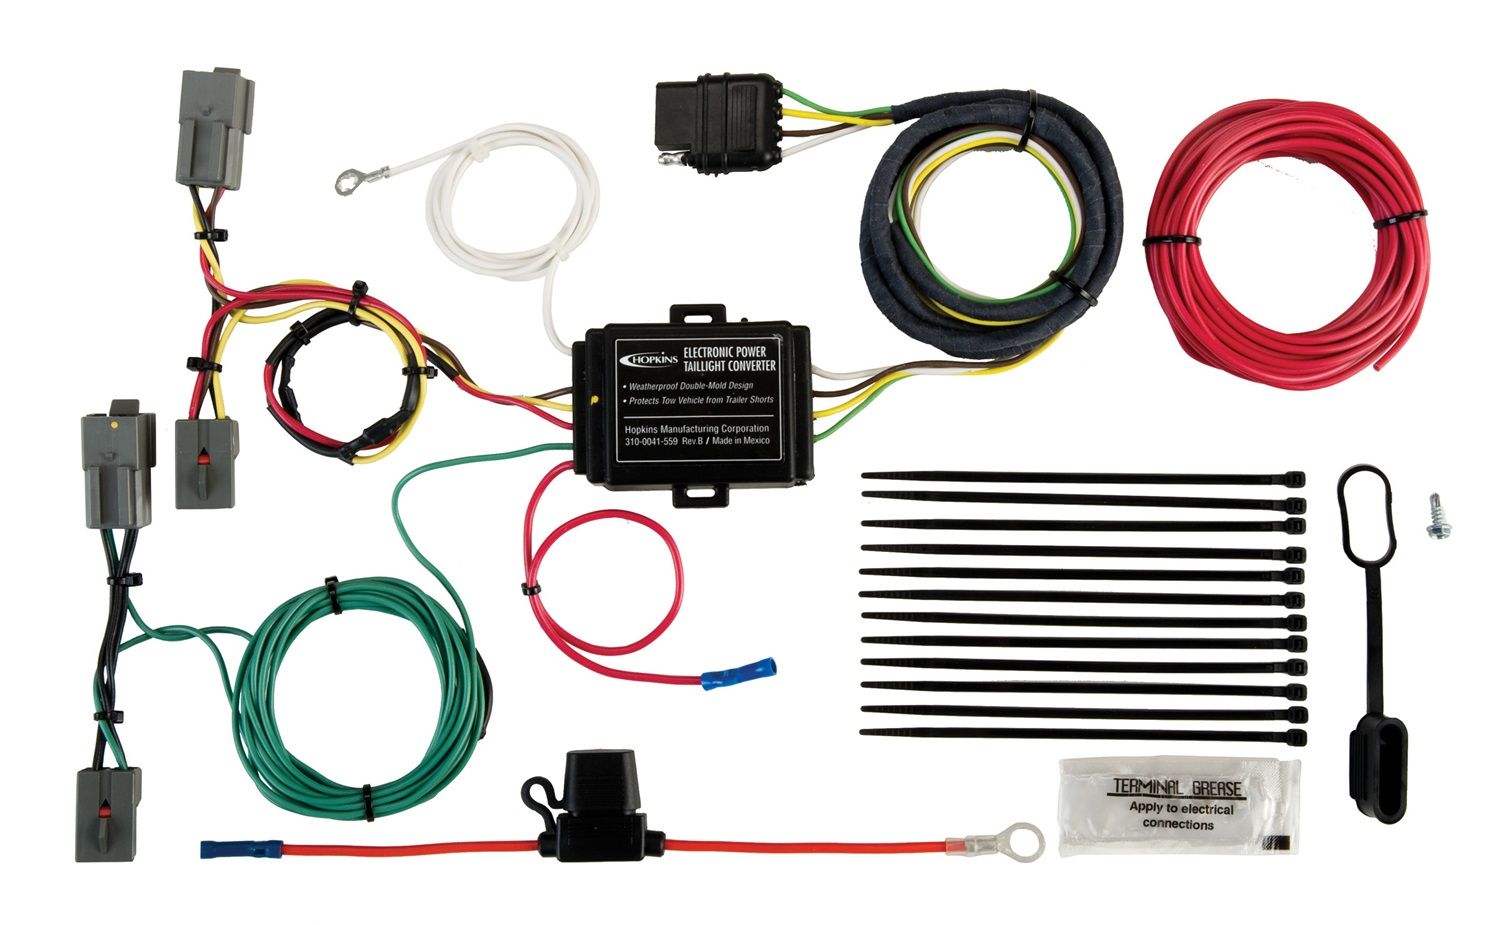 medium resolution of hopkins towing solution 11140504 plug in simple vehicle to trailer wiring harness incl short proof power converter trailer wiring harness plug in